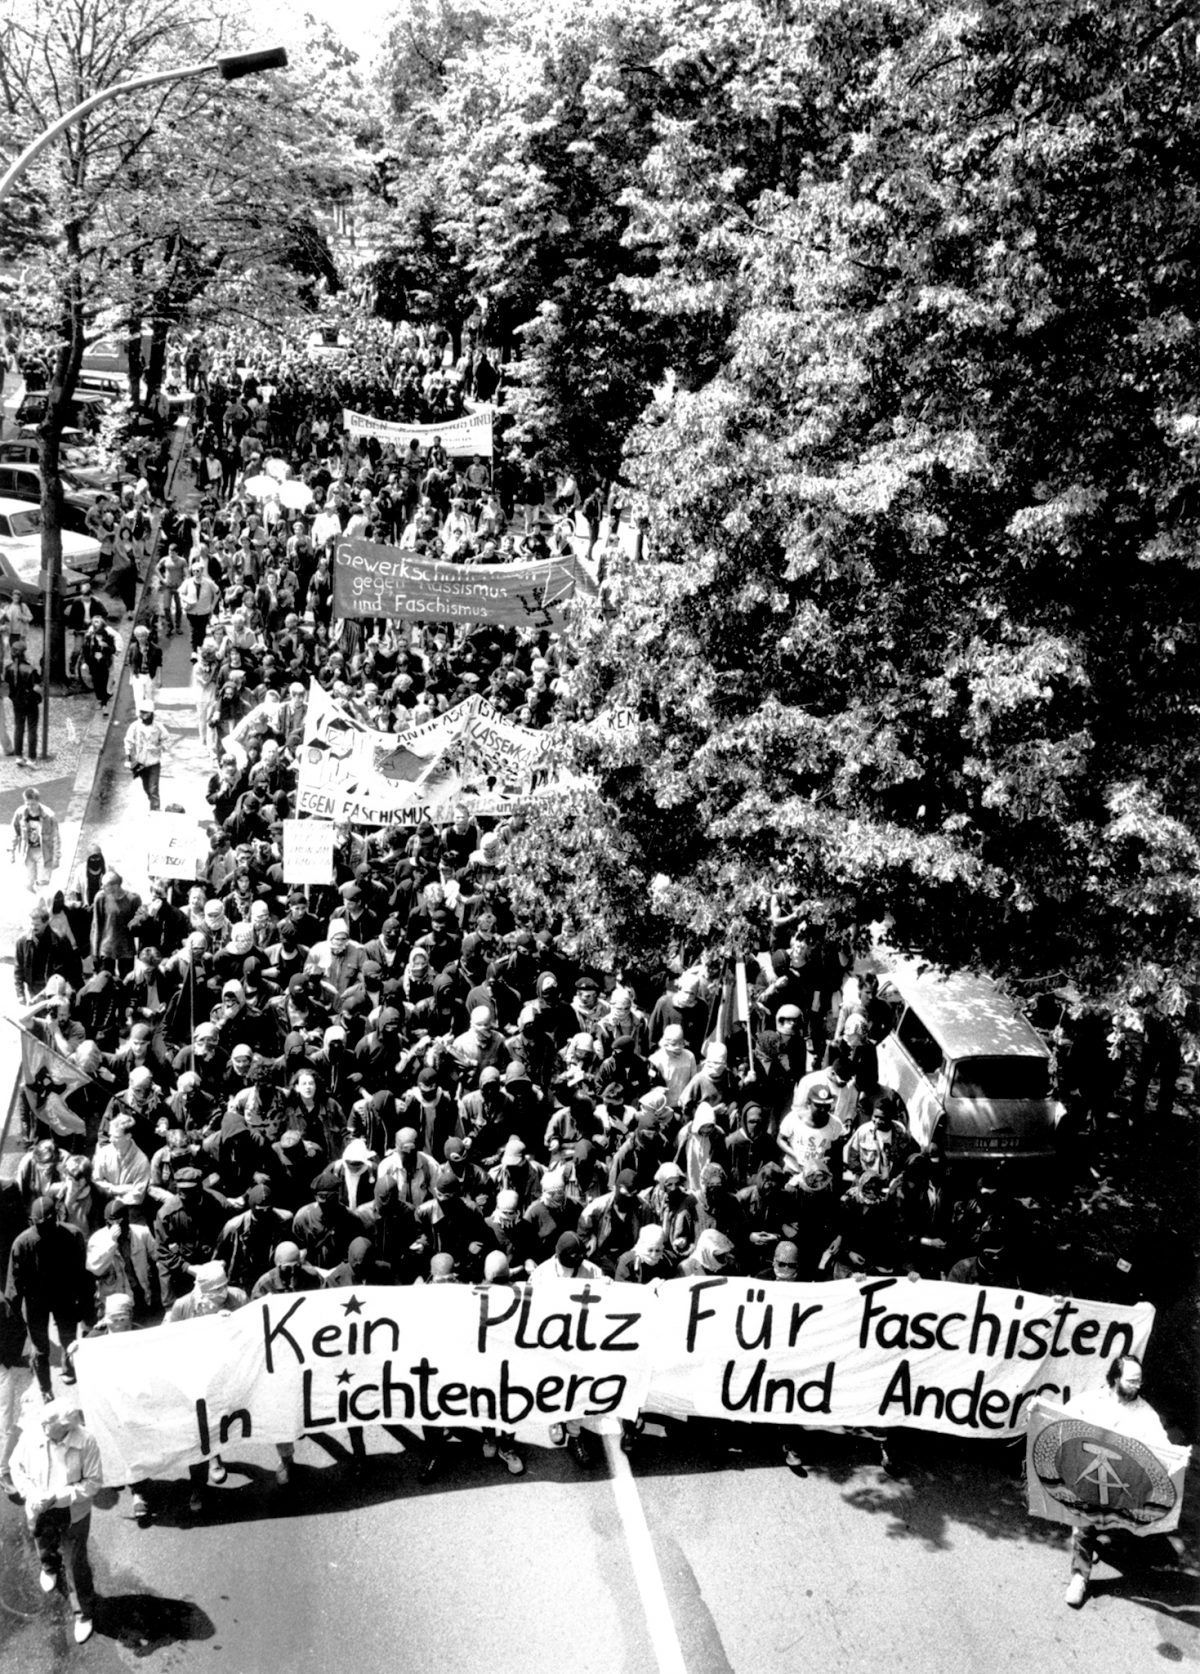 Die Antifaschistische Demonstration in Berlin-Lichtenberg, am 24. Juni 1990,  Teil2